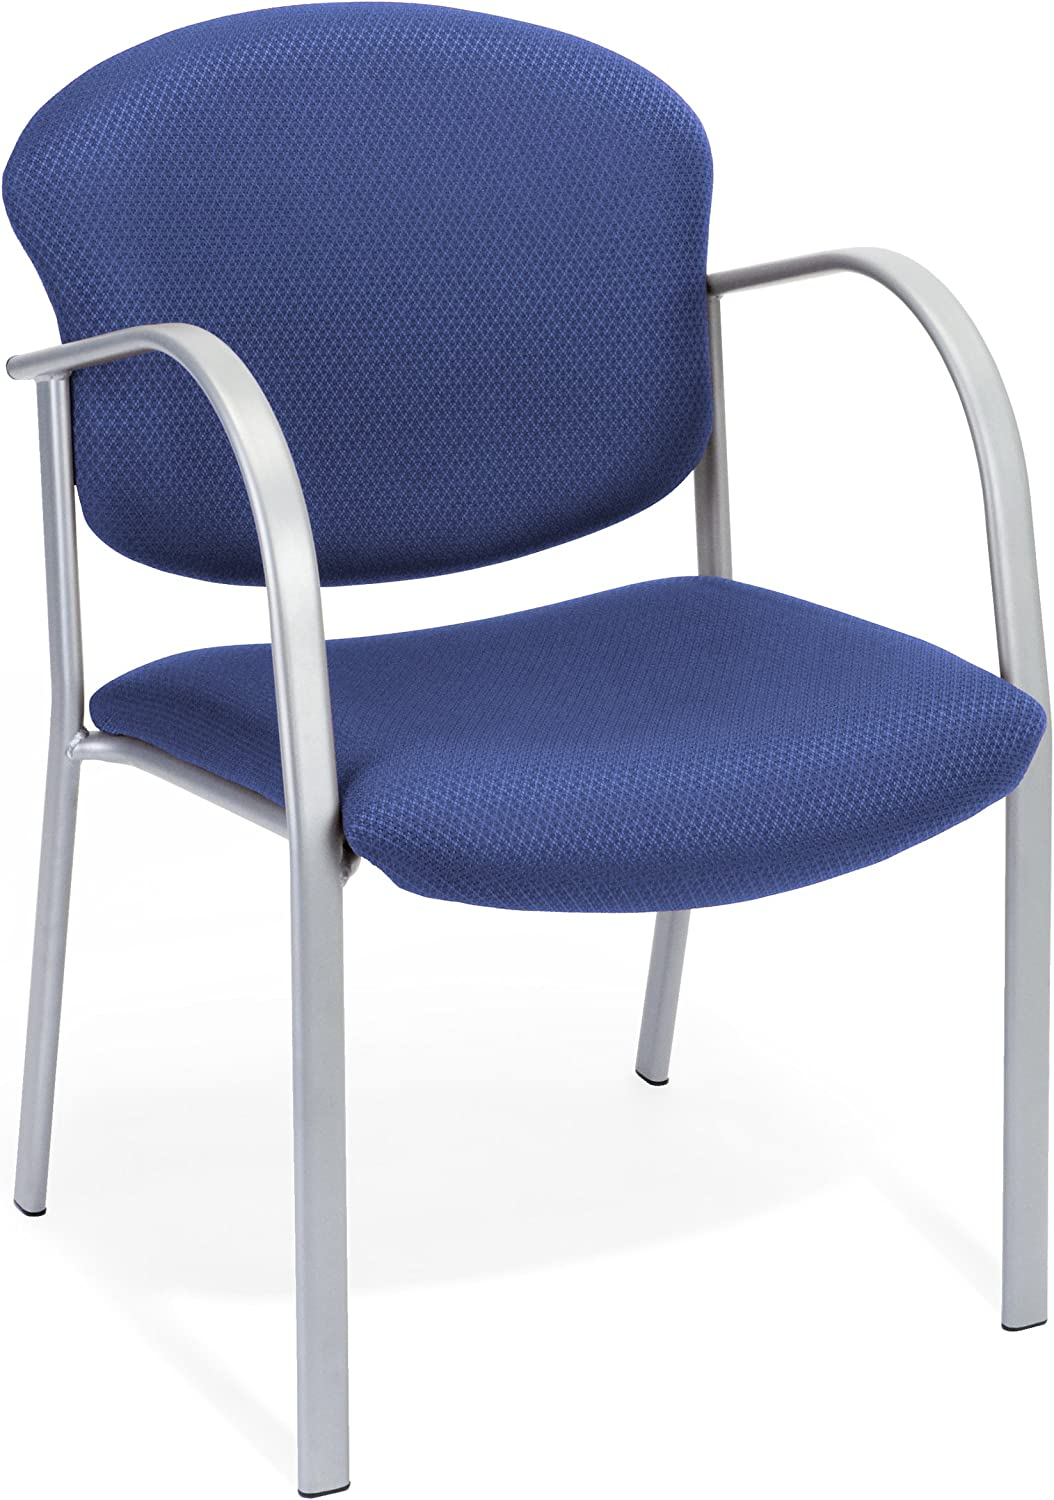 OFM 10-10 Reception Chair with Arms - Fabric Guest Chair, Ocean Blue